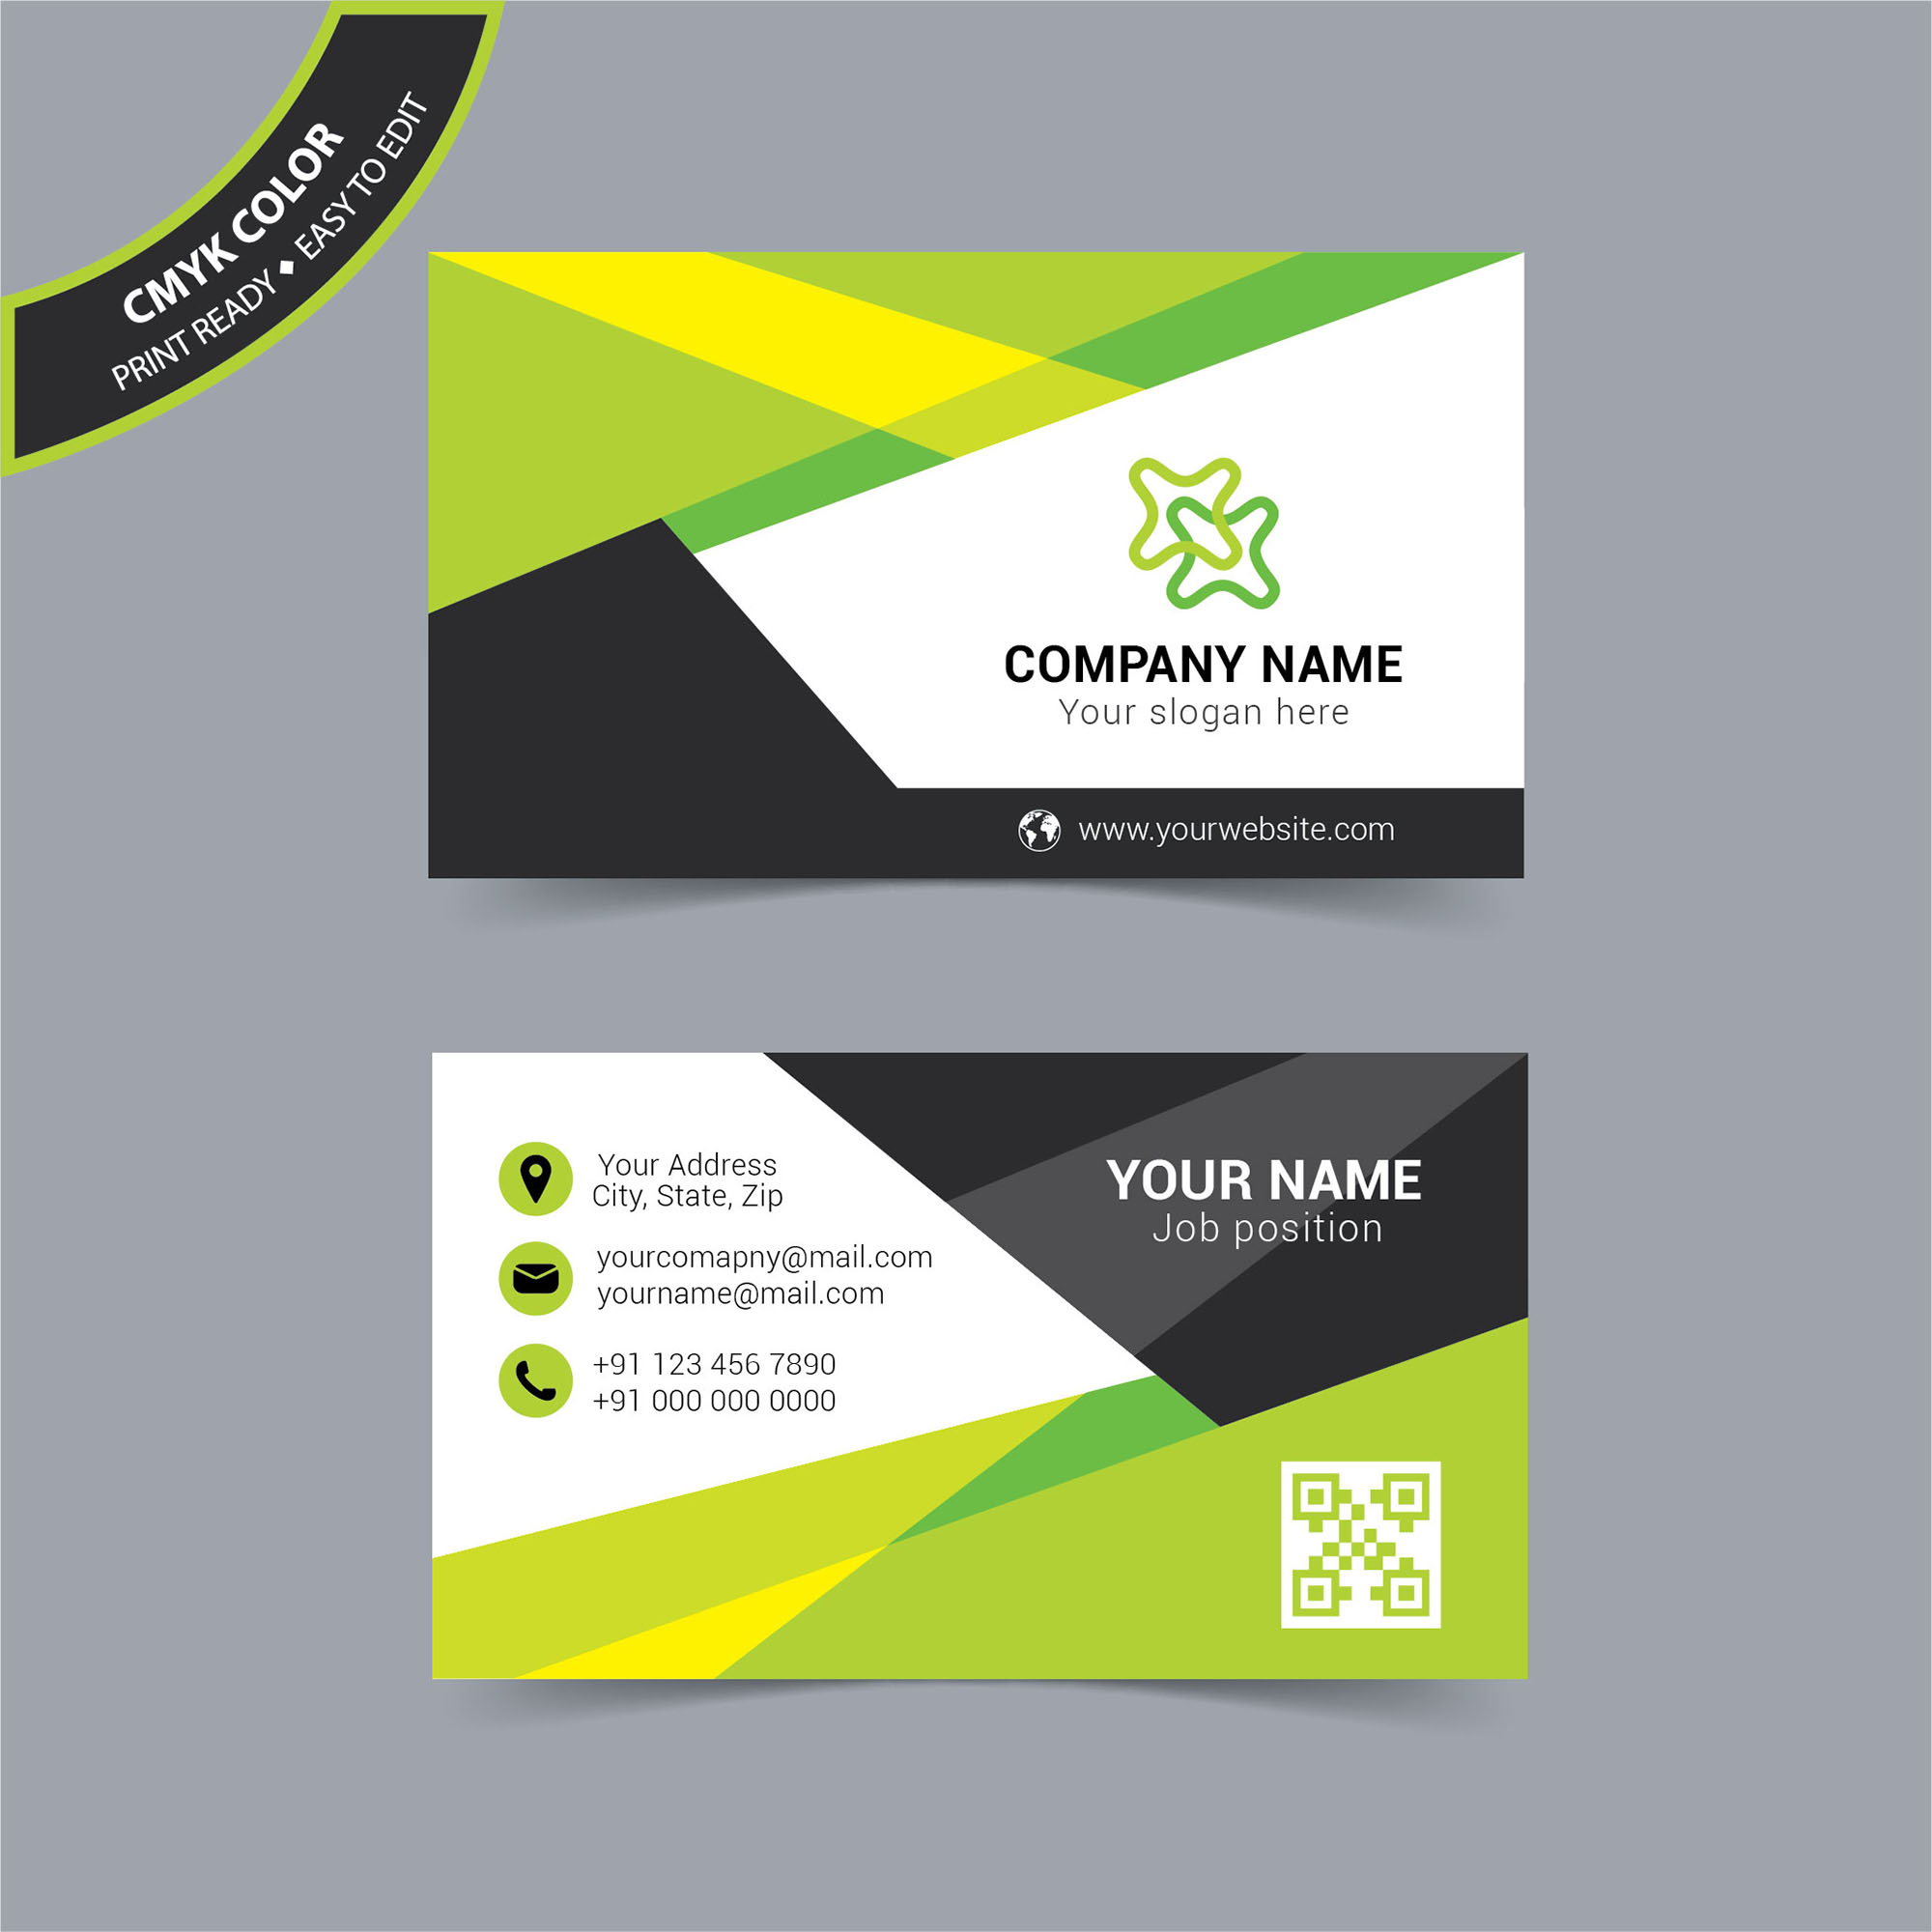 Modern colorful business card design free download wisxi business card business cards business card design business card template design templates reheart Images